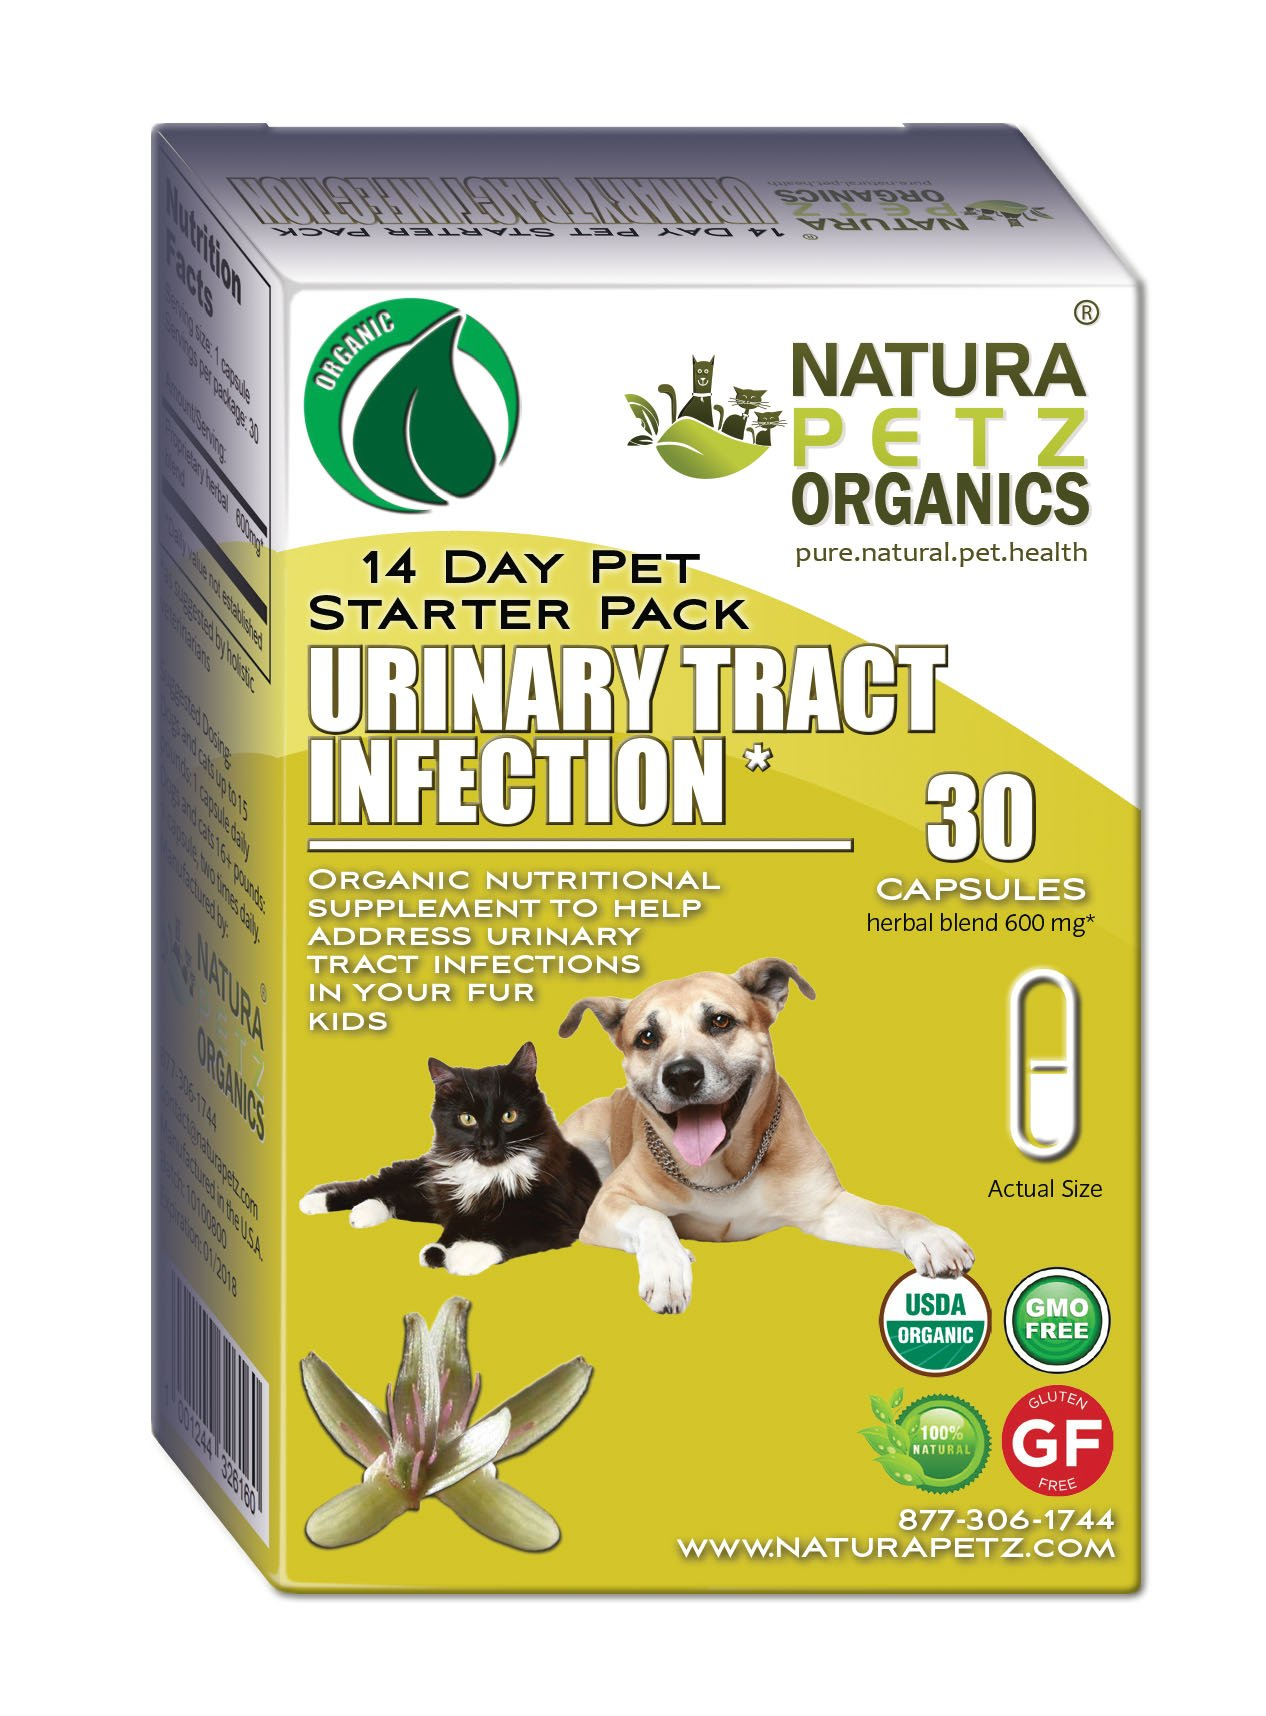 Natura Petz Organics Urinary Tract Infection Starter Pack for Dogs and Cats by Natura Petz Organics